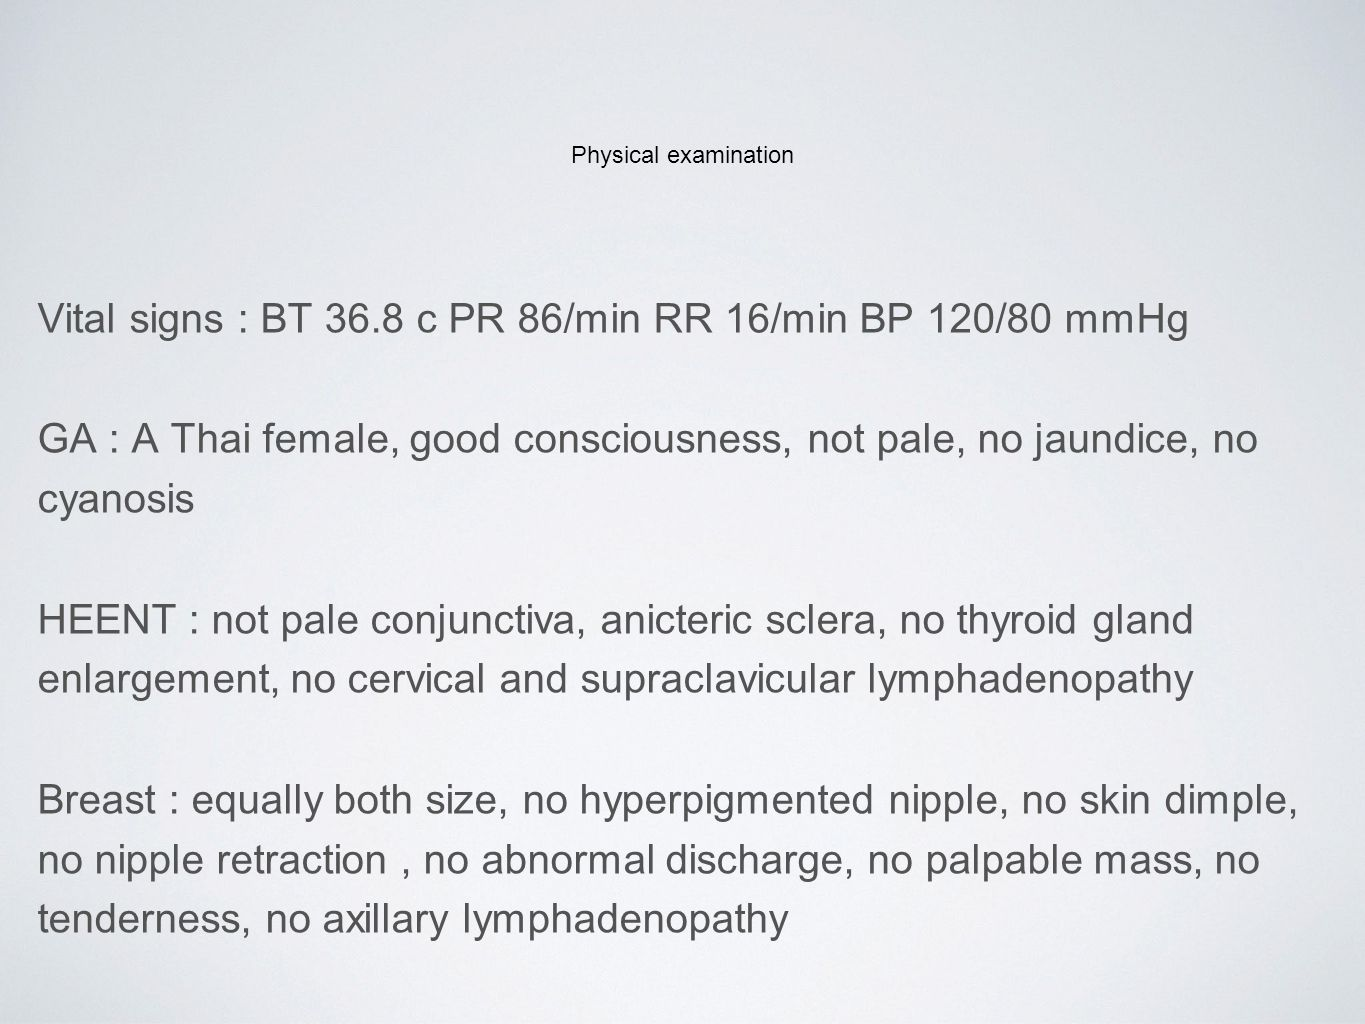 Physical examination Vital signs : BT 36.8 c PR 86/min RR 16/min BP 120/80 mmHg GA : A Thai female, good consciousness, not pale, no jaundice, no cyanosis HEENT : not pale conjunctiva, anicteric sclera, no thyroid gland enlargement, no cervical and supraclavicular lymphadenopathy Breast : equally both size, no hyperpigmented nipple, no skin dimple, no nipple retraction, no abnormal discharge, no palpable mass, no tenderness, no axillary lymphadenopathy